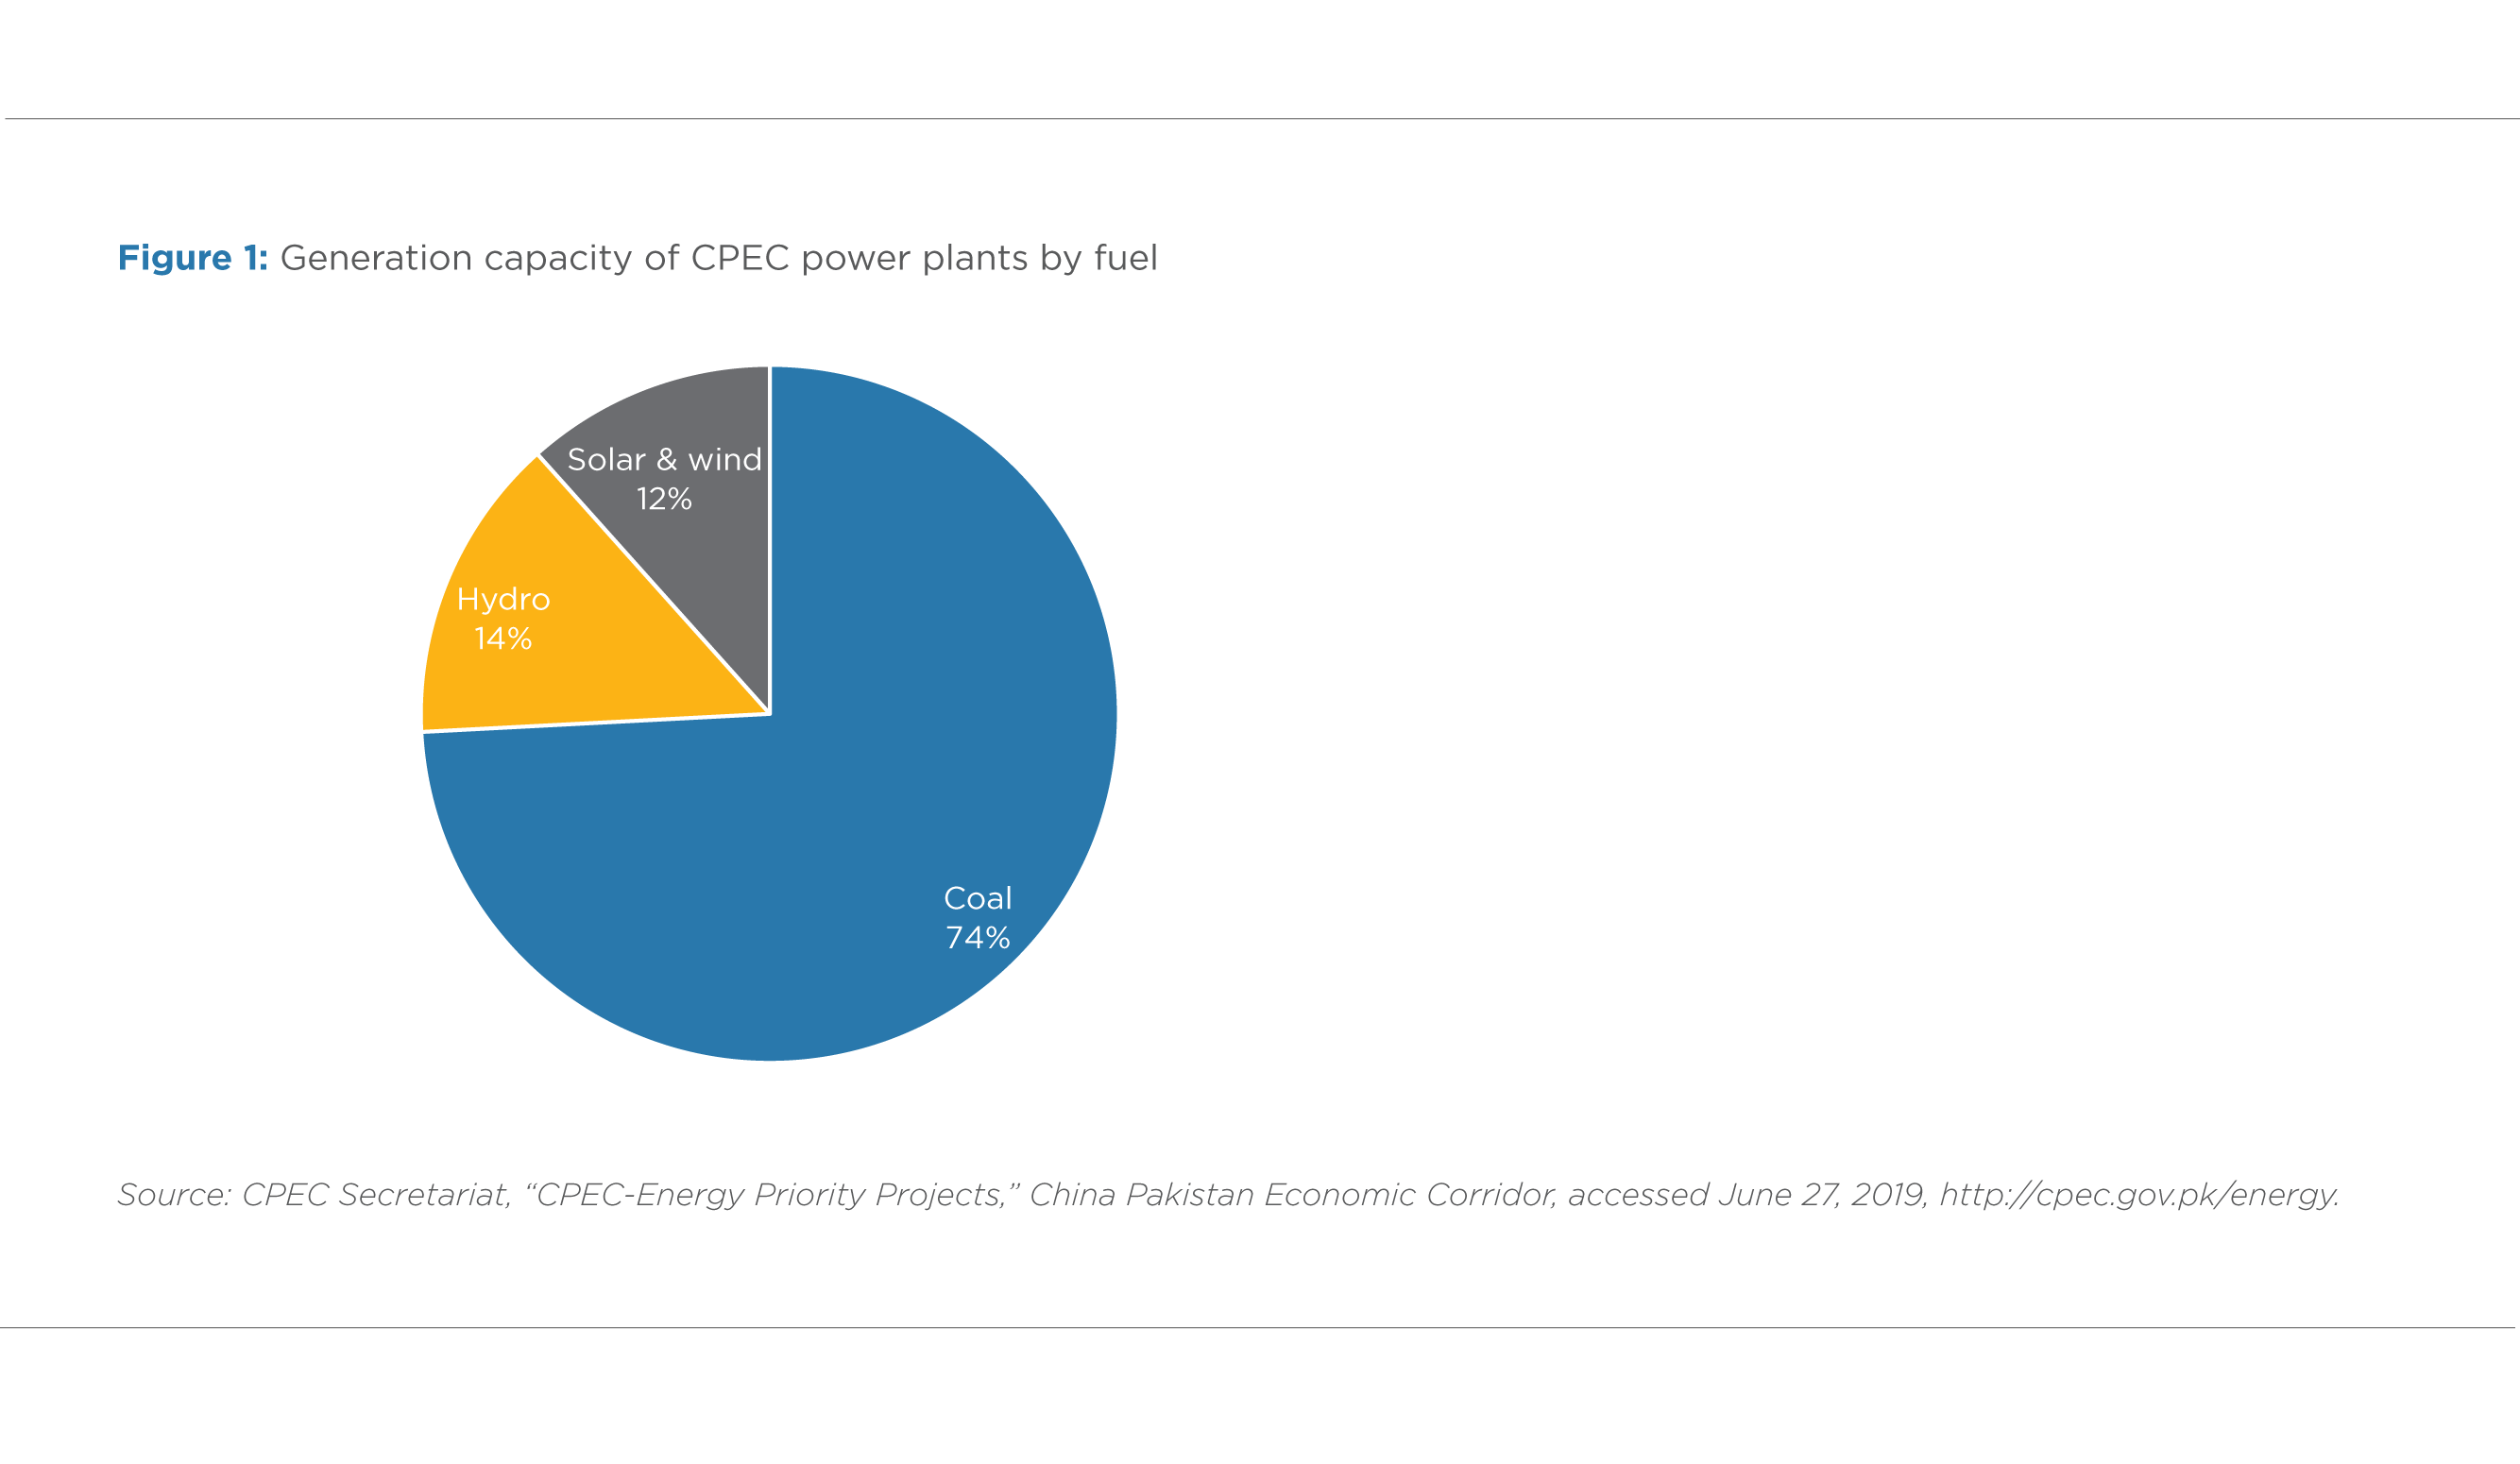 FIGURE 1. GENERATION CAPACITY OF CPEC POWER PLANTS BY FUEL